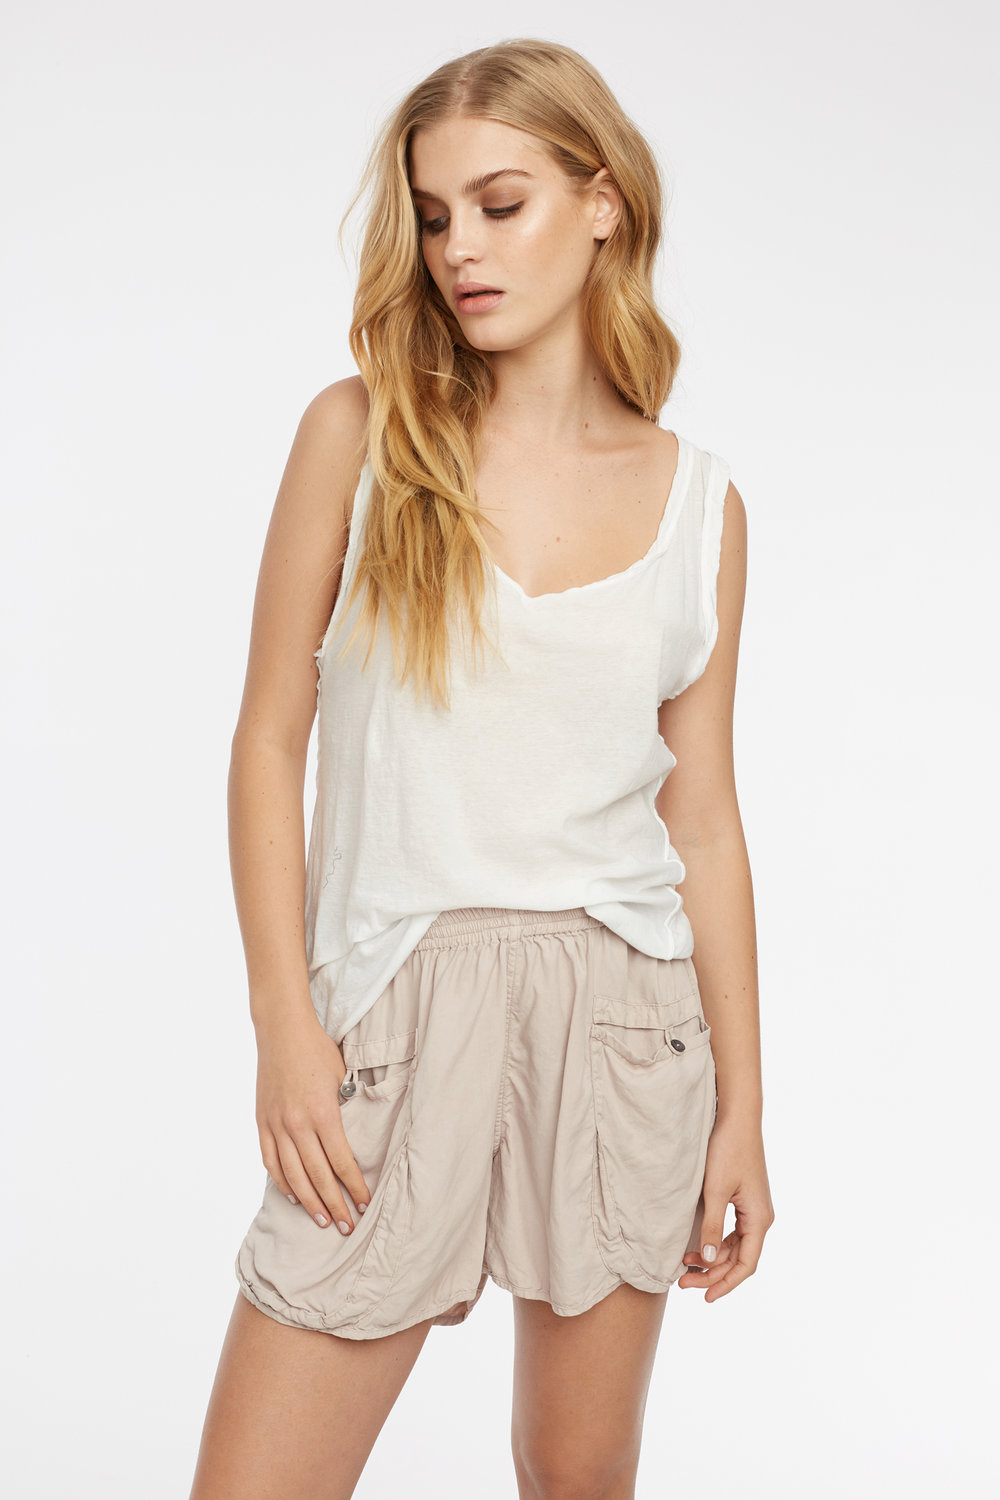 RACER TANK BLANC. POCKET SHORT TAUPE